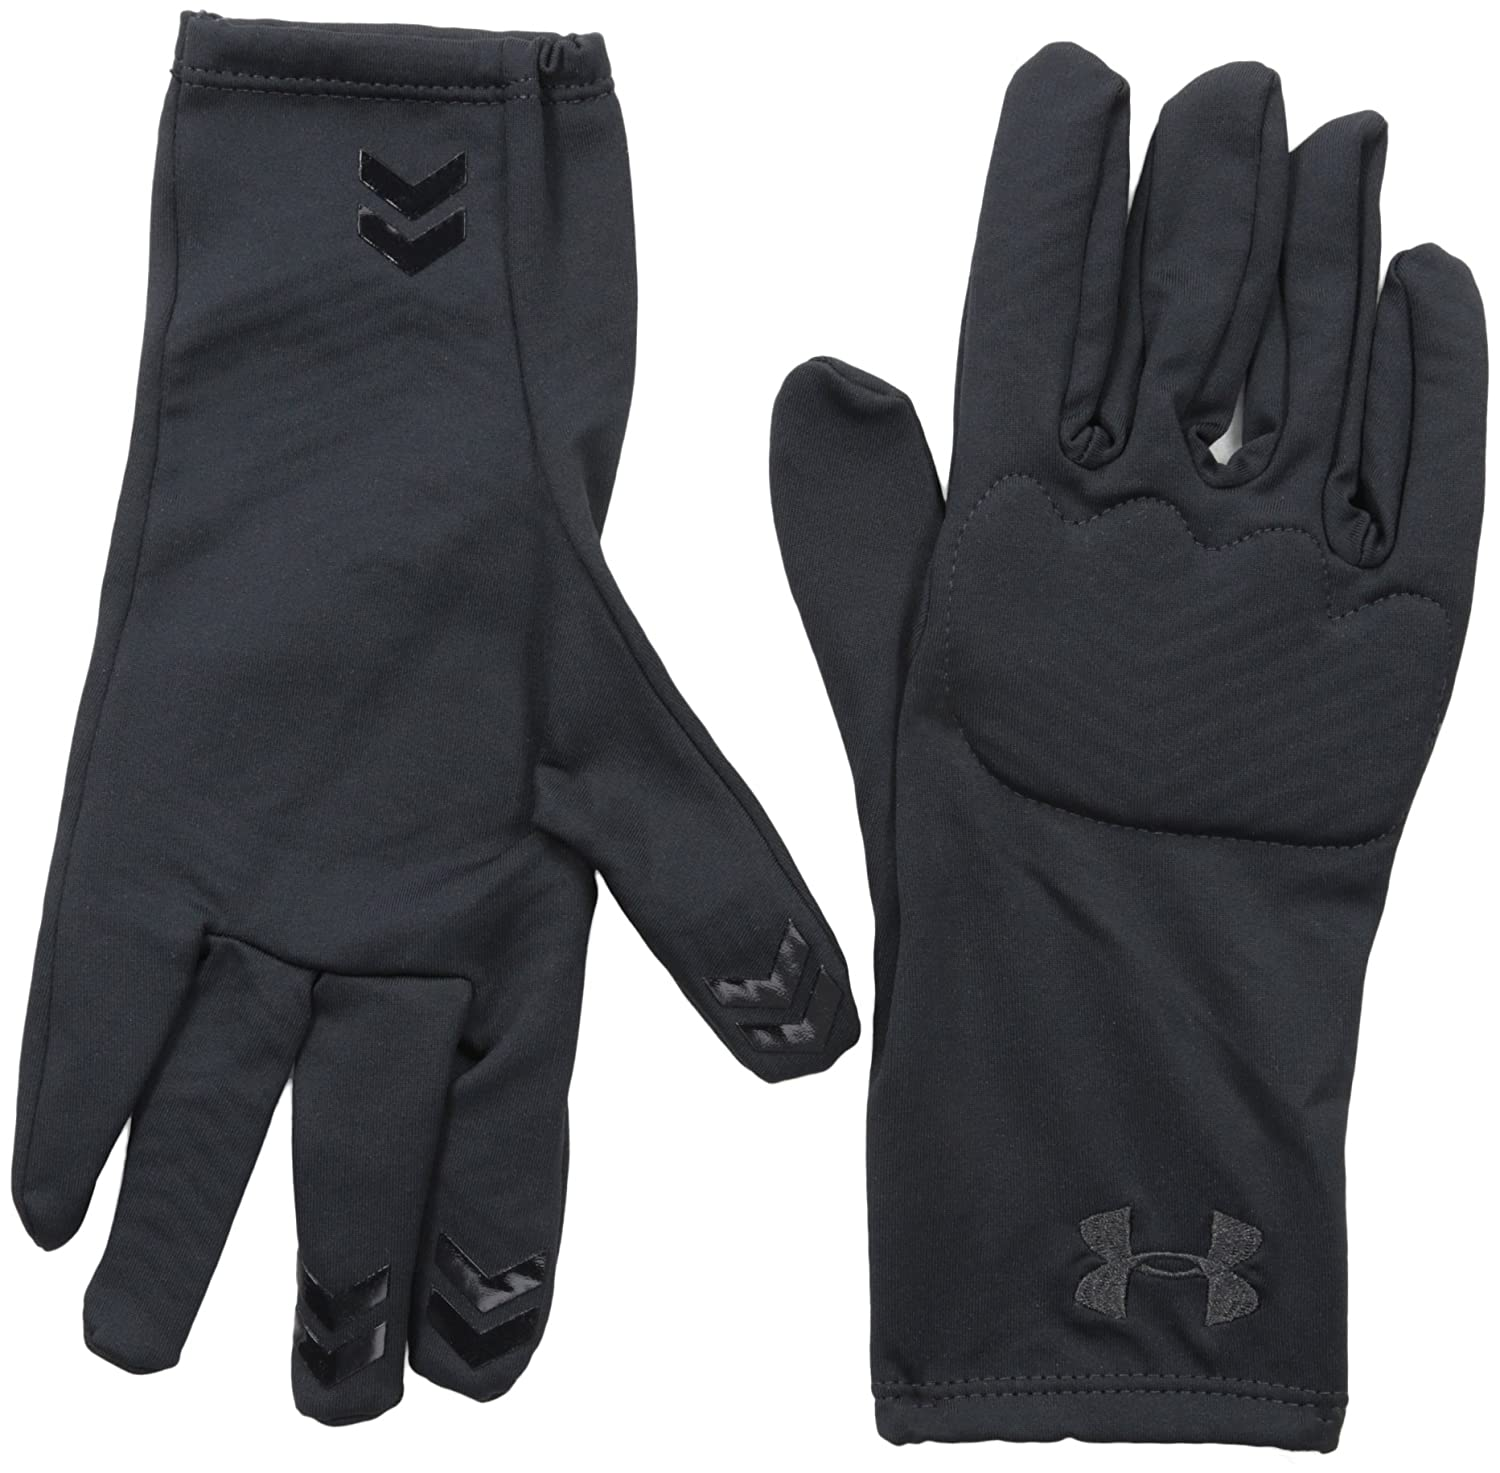 Under armour leather work gloves - Amazon Com Under Armour Men S Tactical Coldgear Infrared Gloves Sports Outdoors